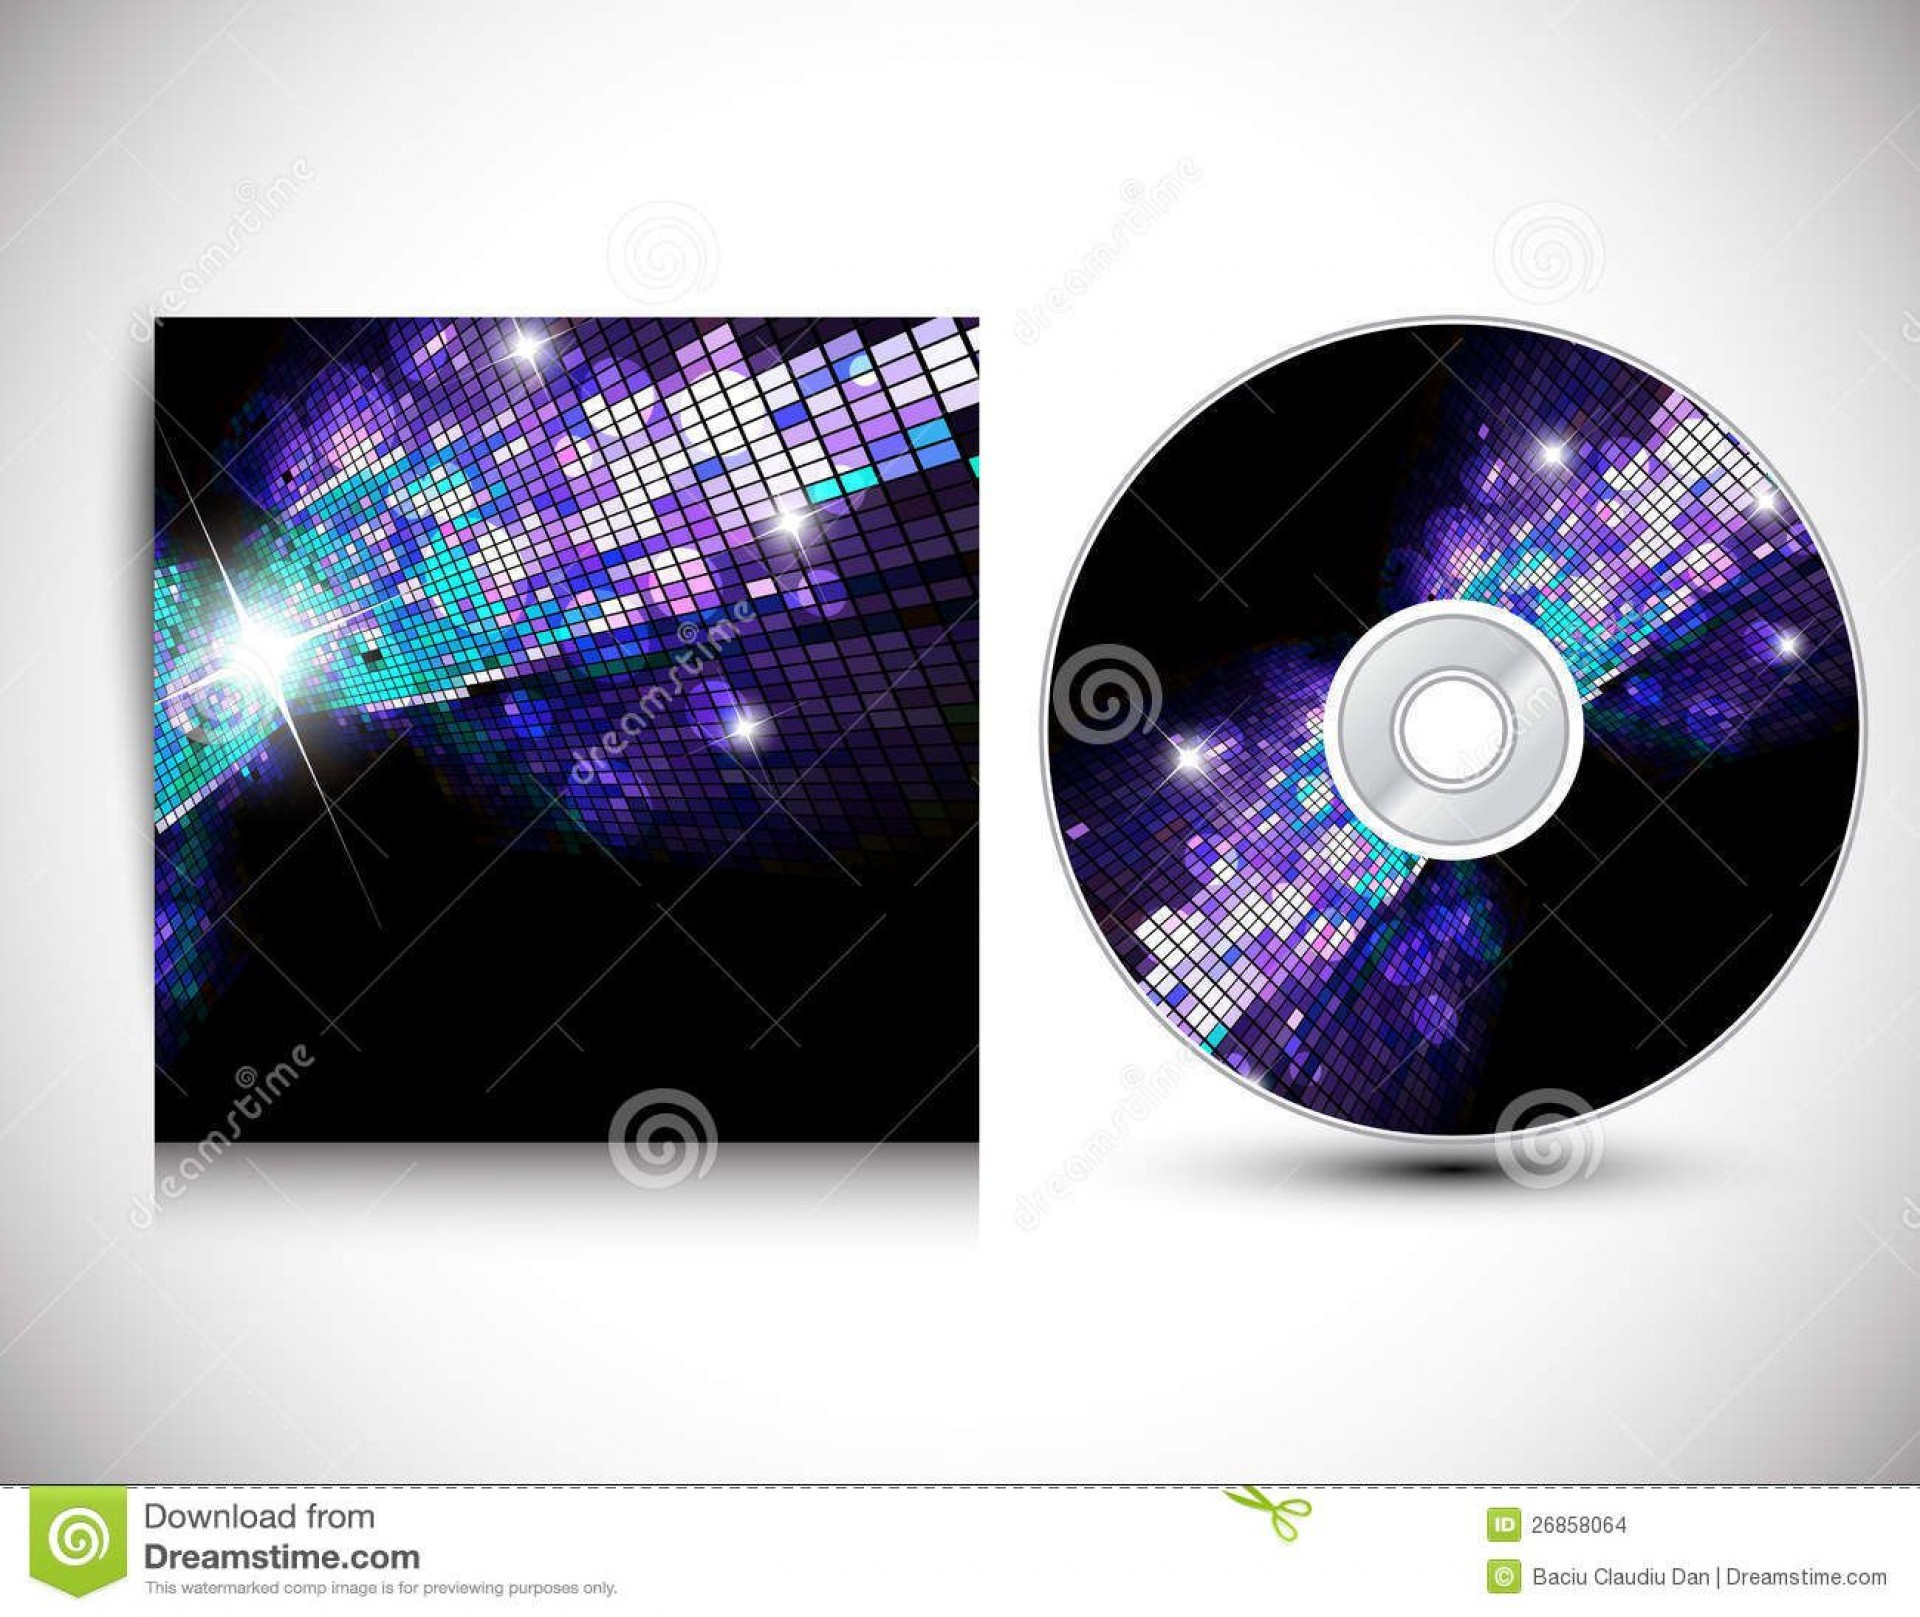 005 Archaicawful Music Cd Cover Design Template Free Download Highest Quality 1920